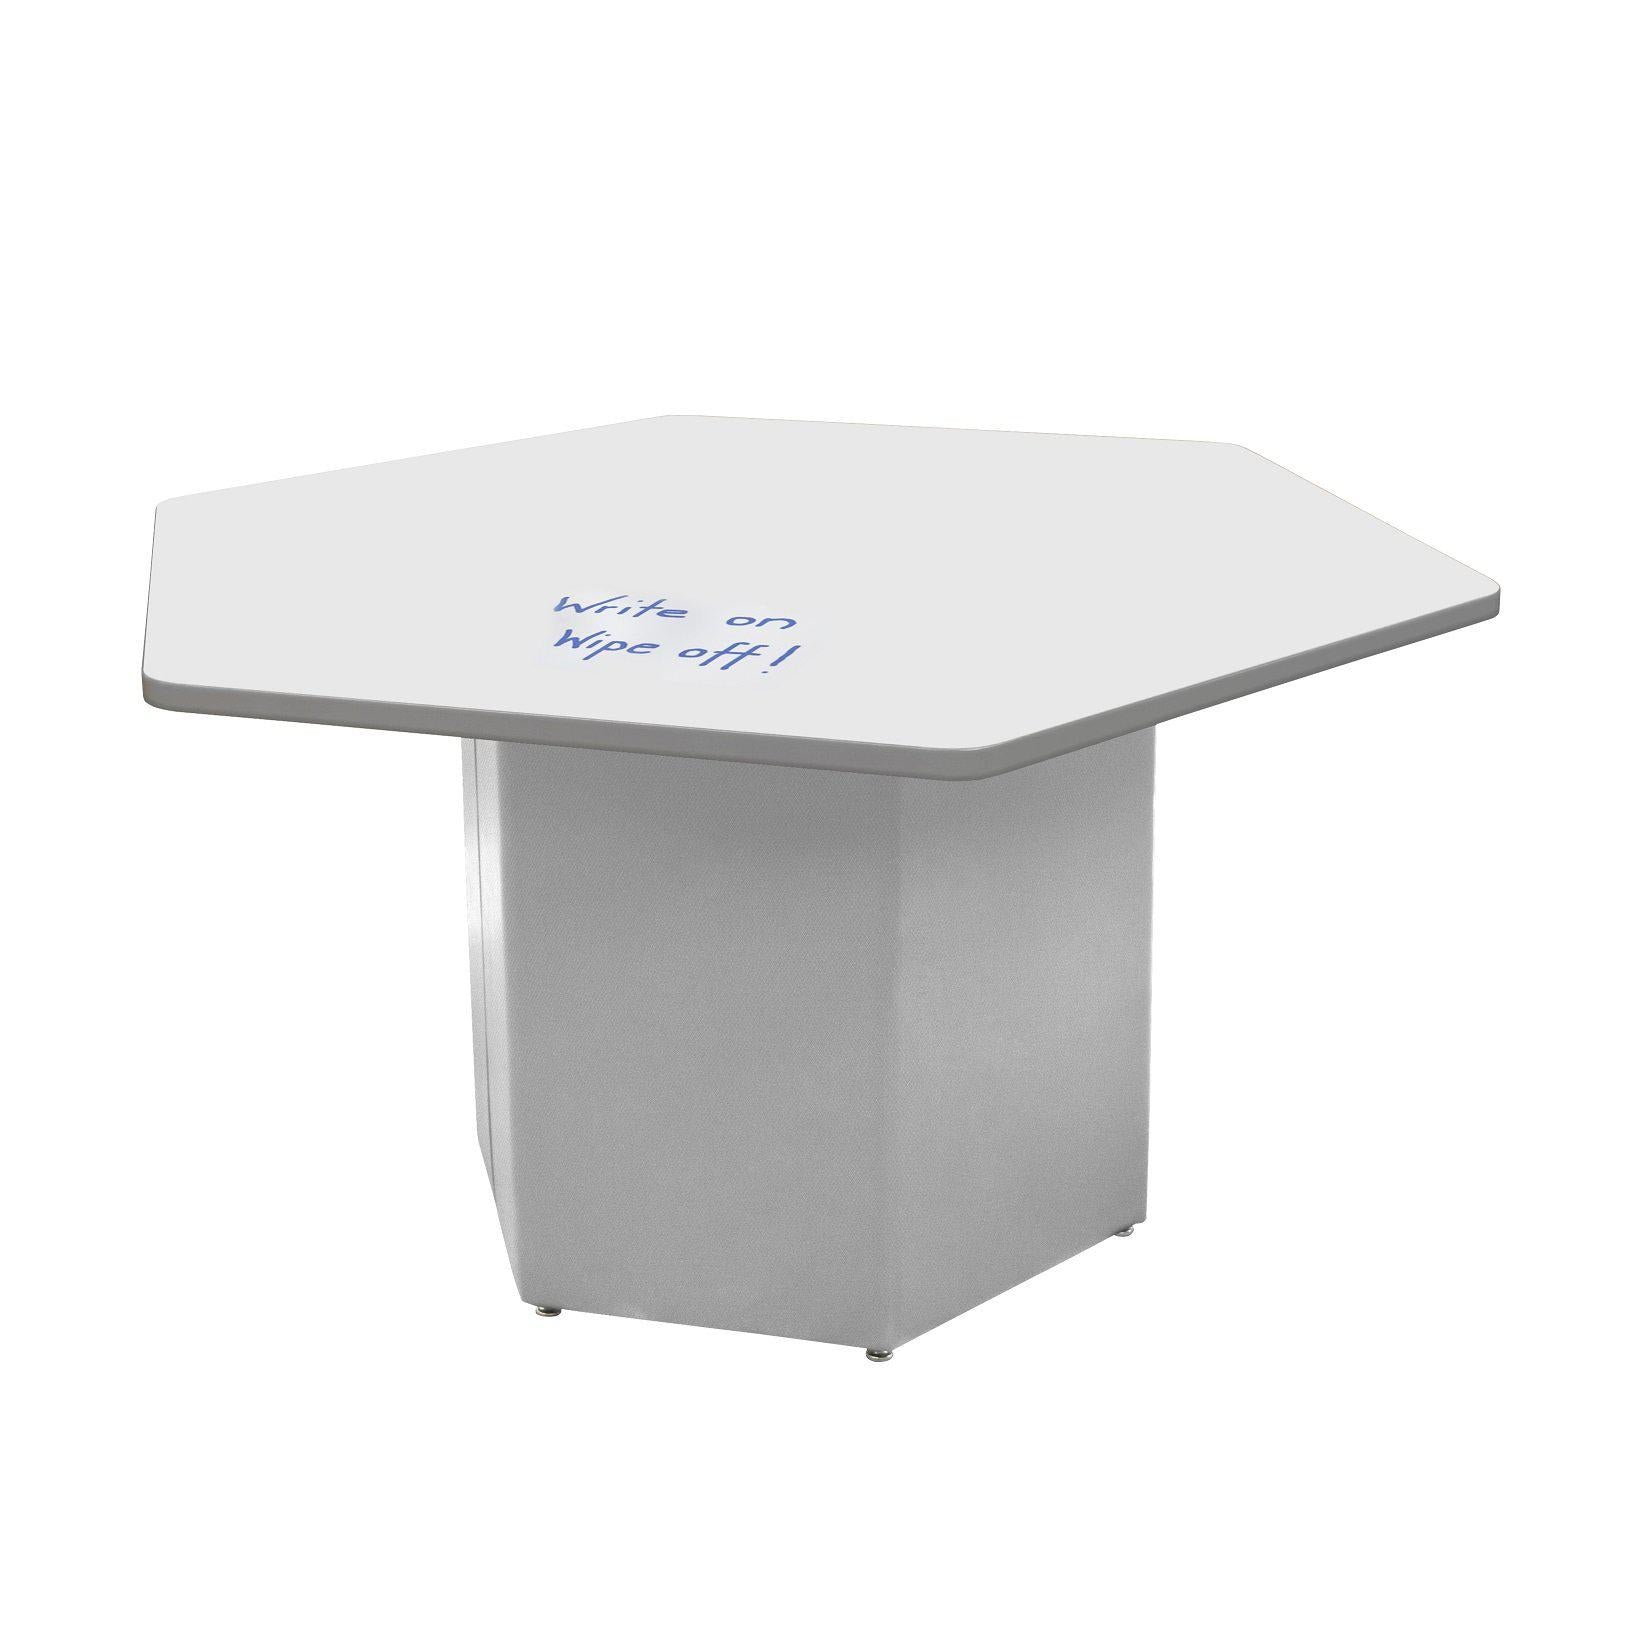 "Sonik™ Soft Seating HexagonTable with Markerboard Top and Power/Data Supply-Soft Seating-29""-Markerboard/Gray-Frost"